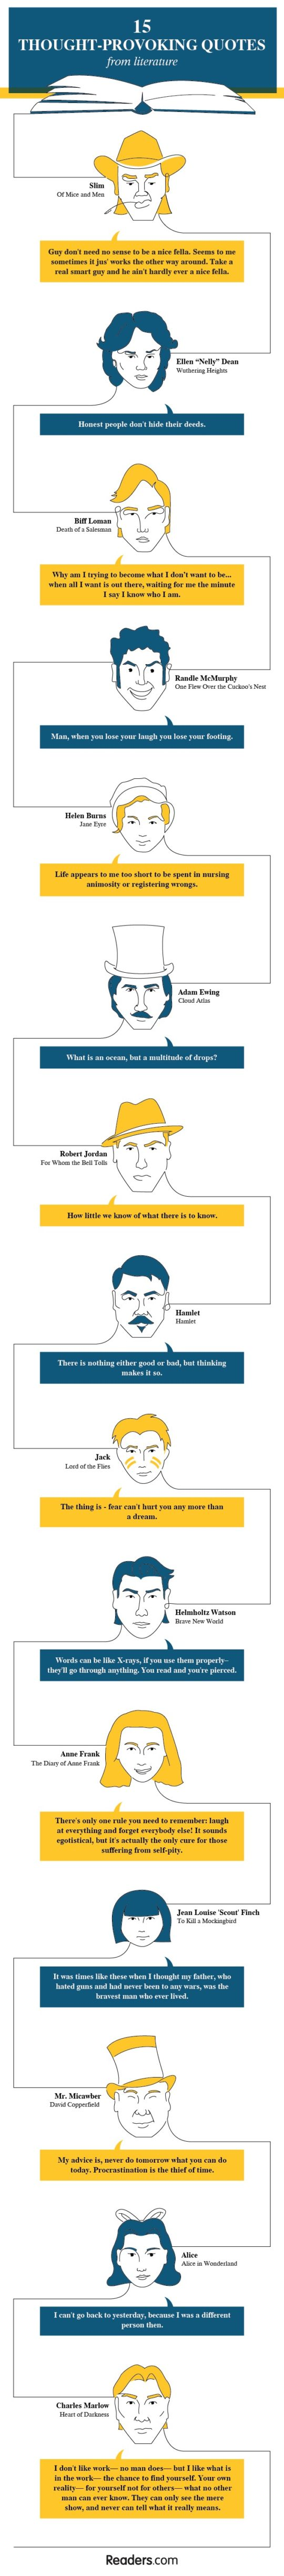 15 thougt-provoking quotes from literature - full infographic